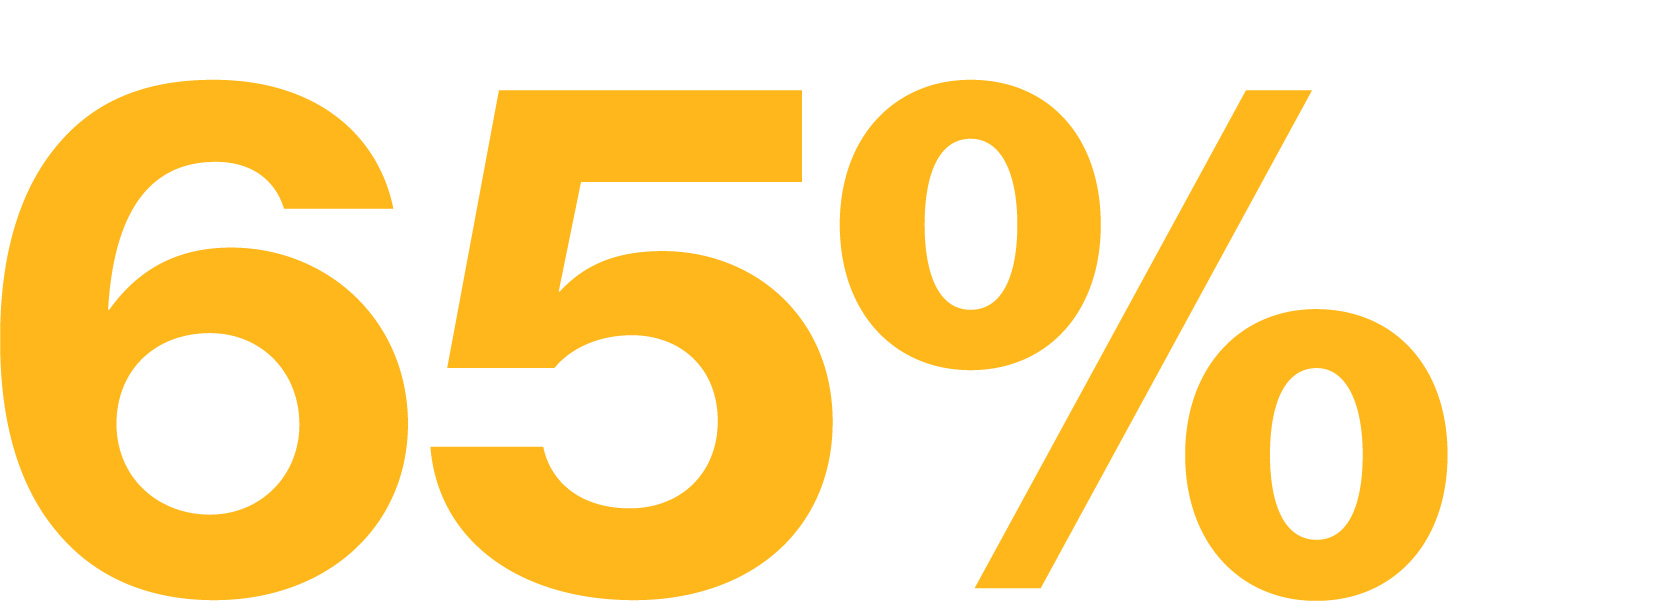 jhmanigo_percentages_1_yellow.png